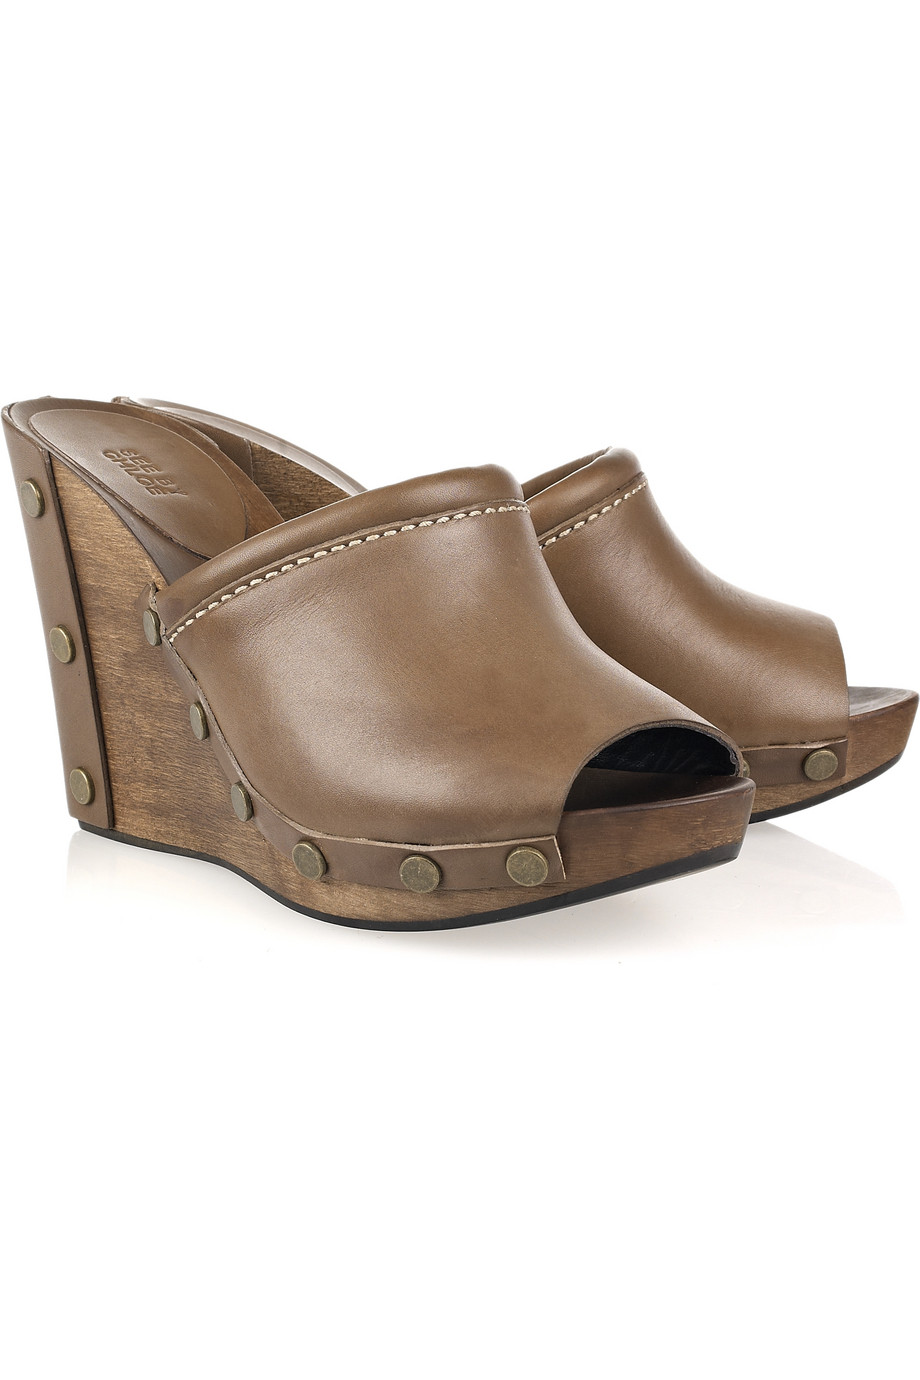 935299ee342 Lyst - See By Chloé Peep-toe Leather and Wooden Wedges in Brown